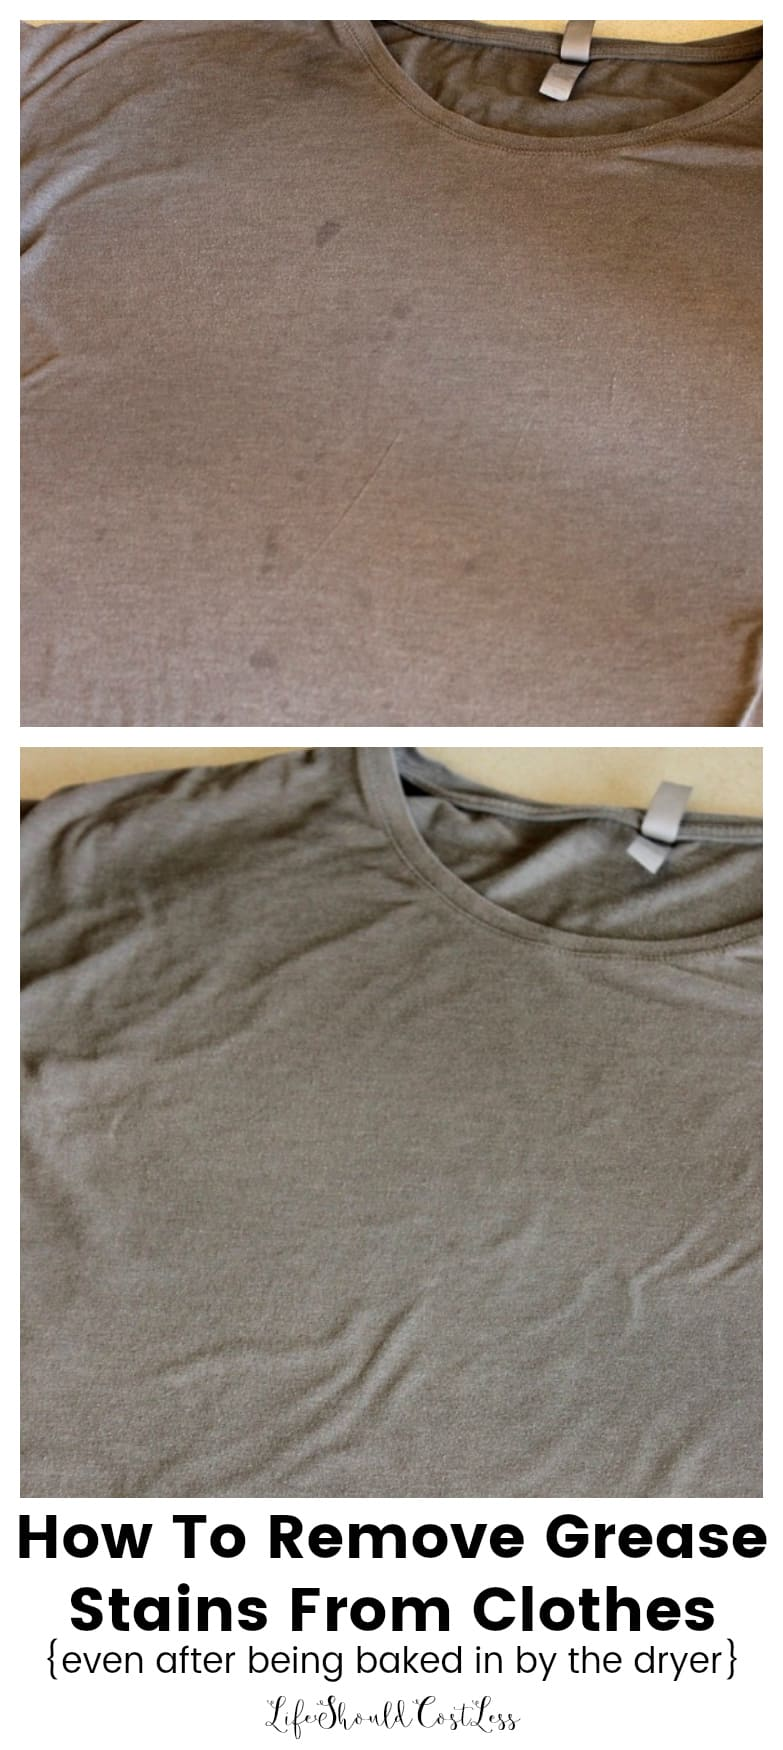 How To Get Grease Stains Out Of Clothing, even after being run through the dryer.